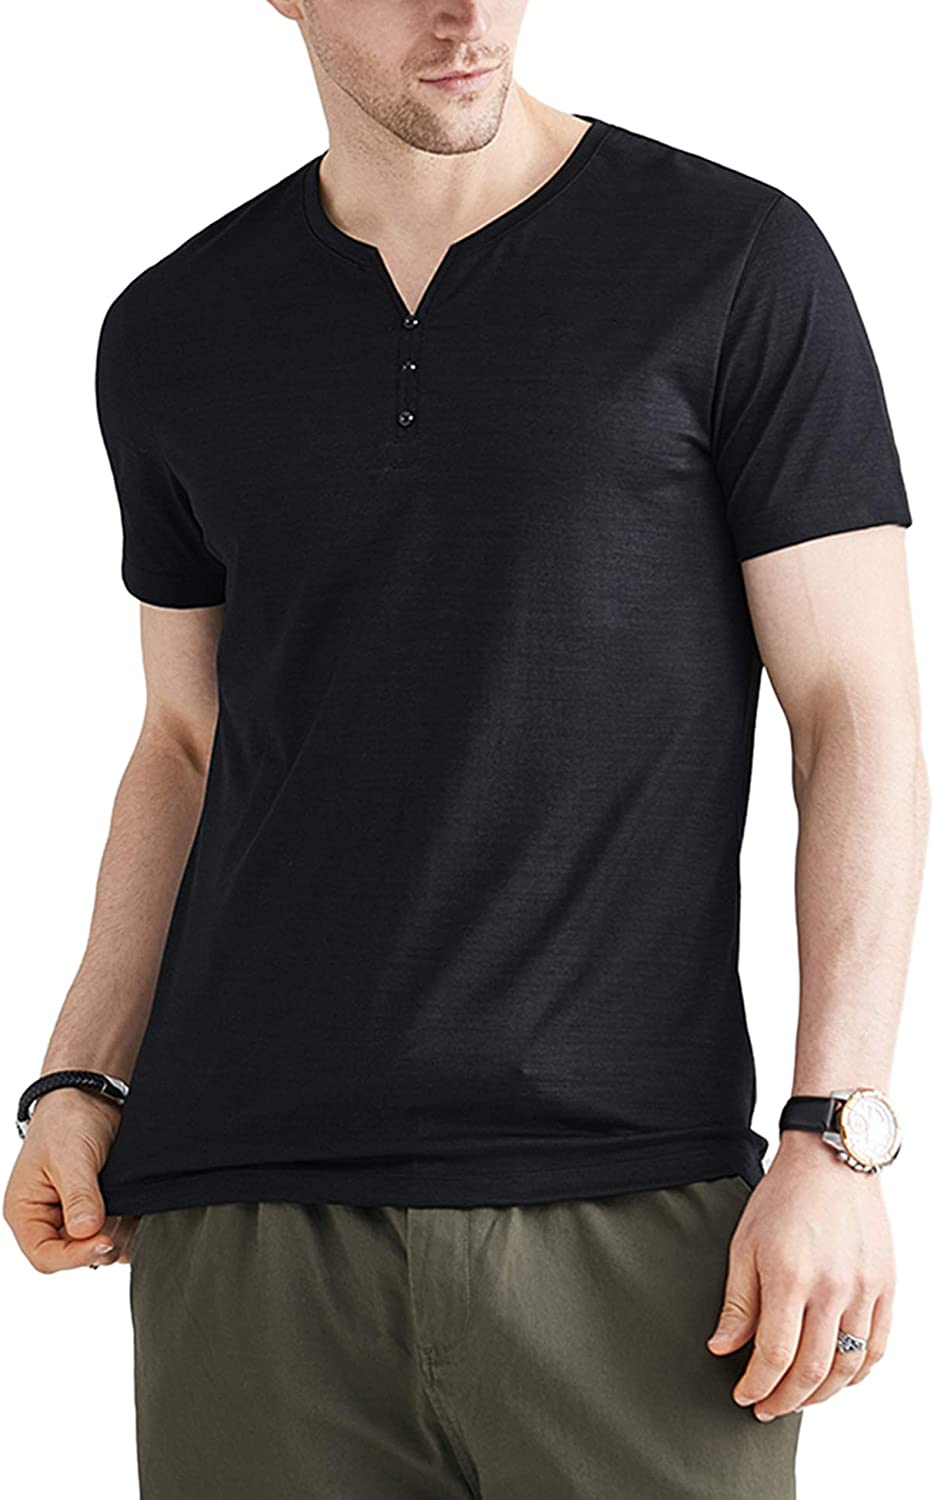 LecGee Men's Workout Shirts Short Sleeve Henley Quick Dry Active Athletic Gym Performance T-Shirts